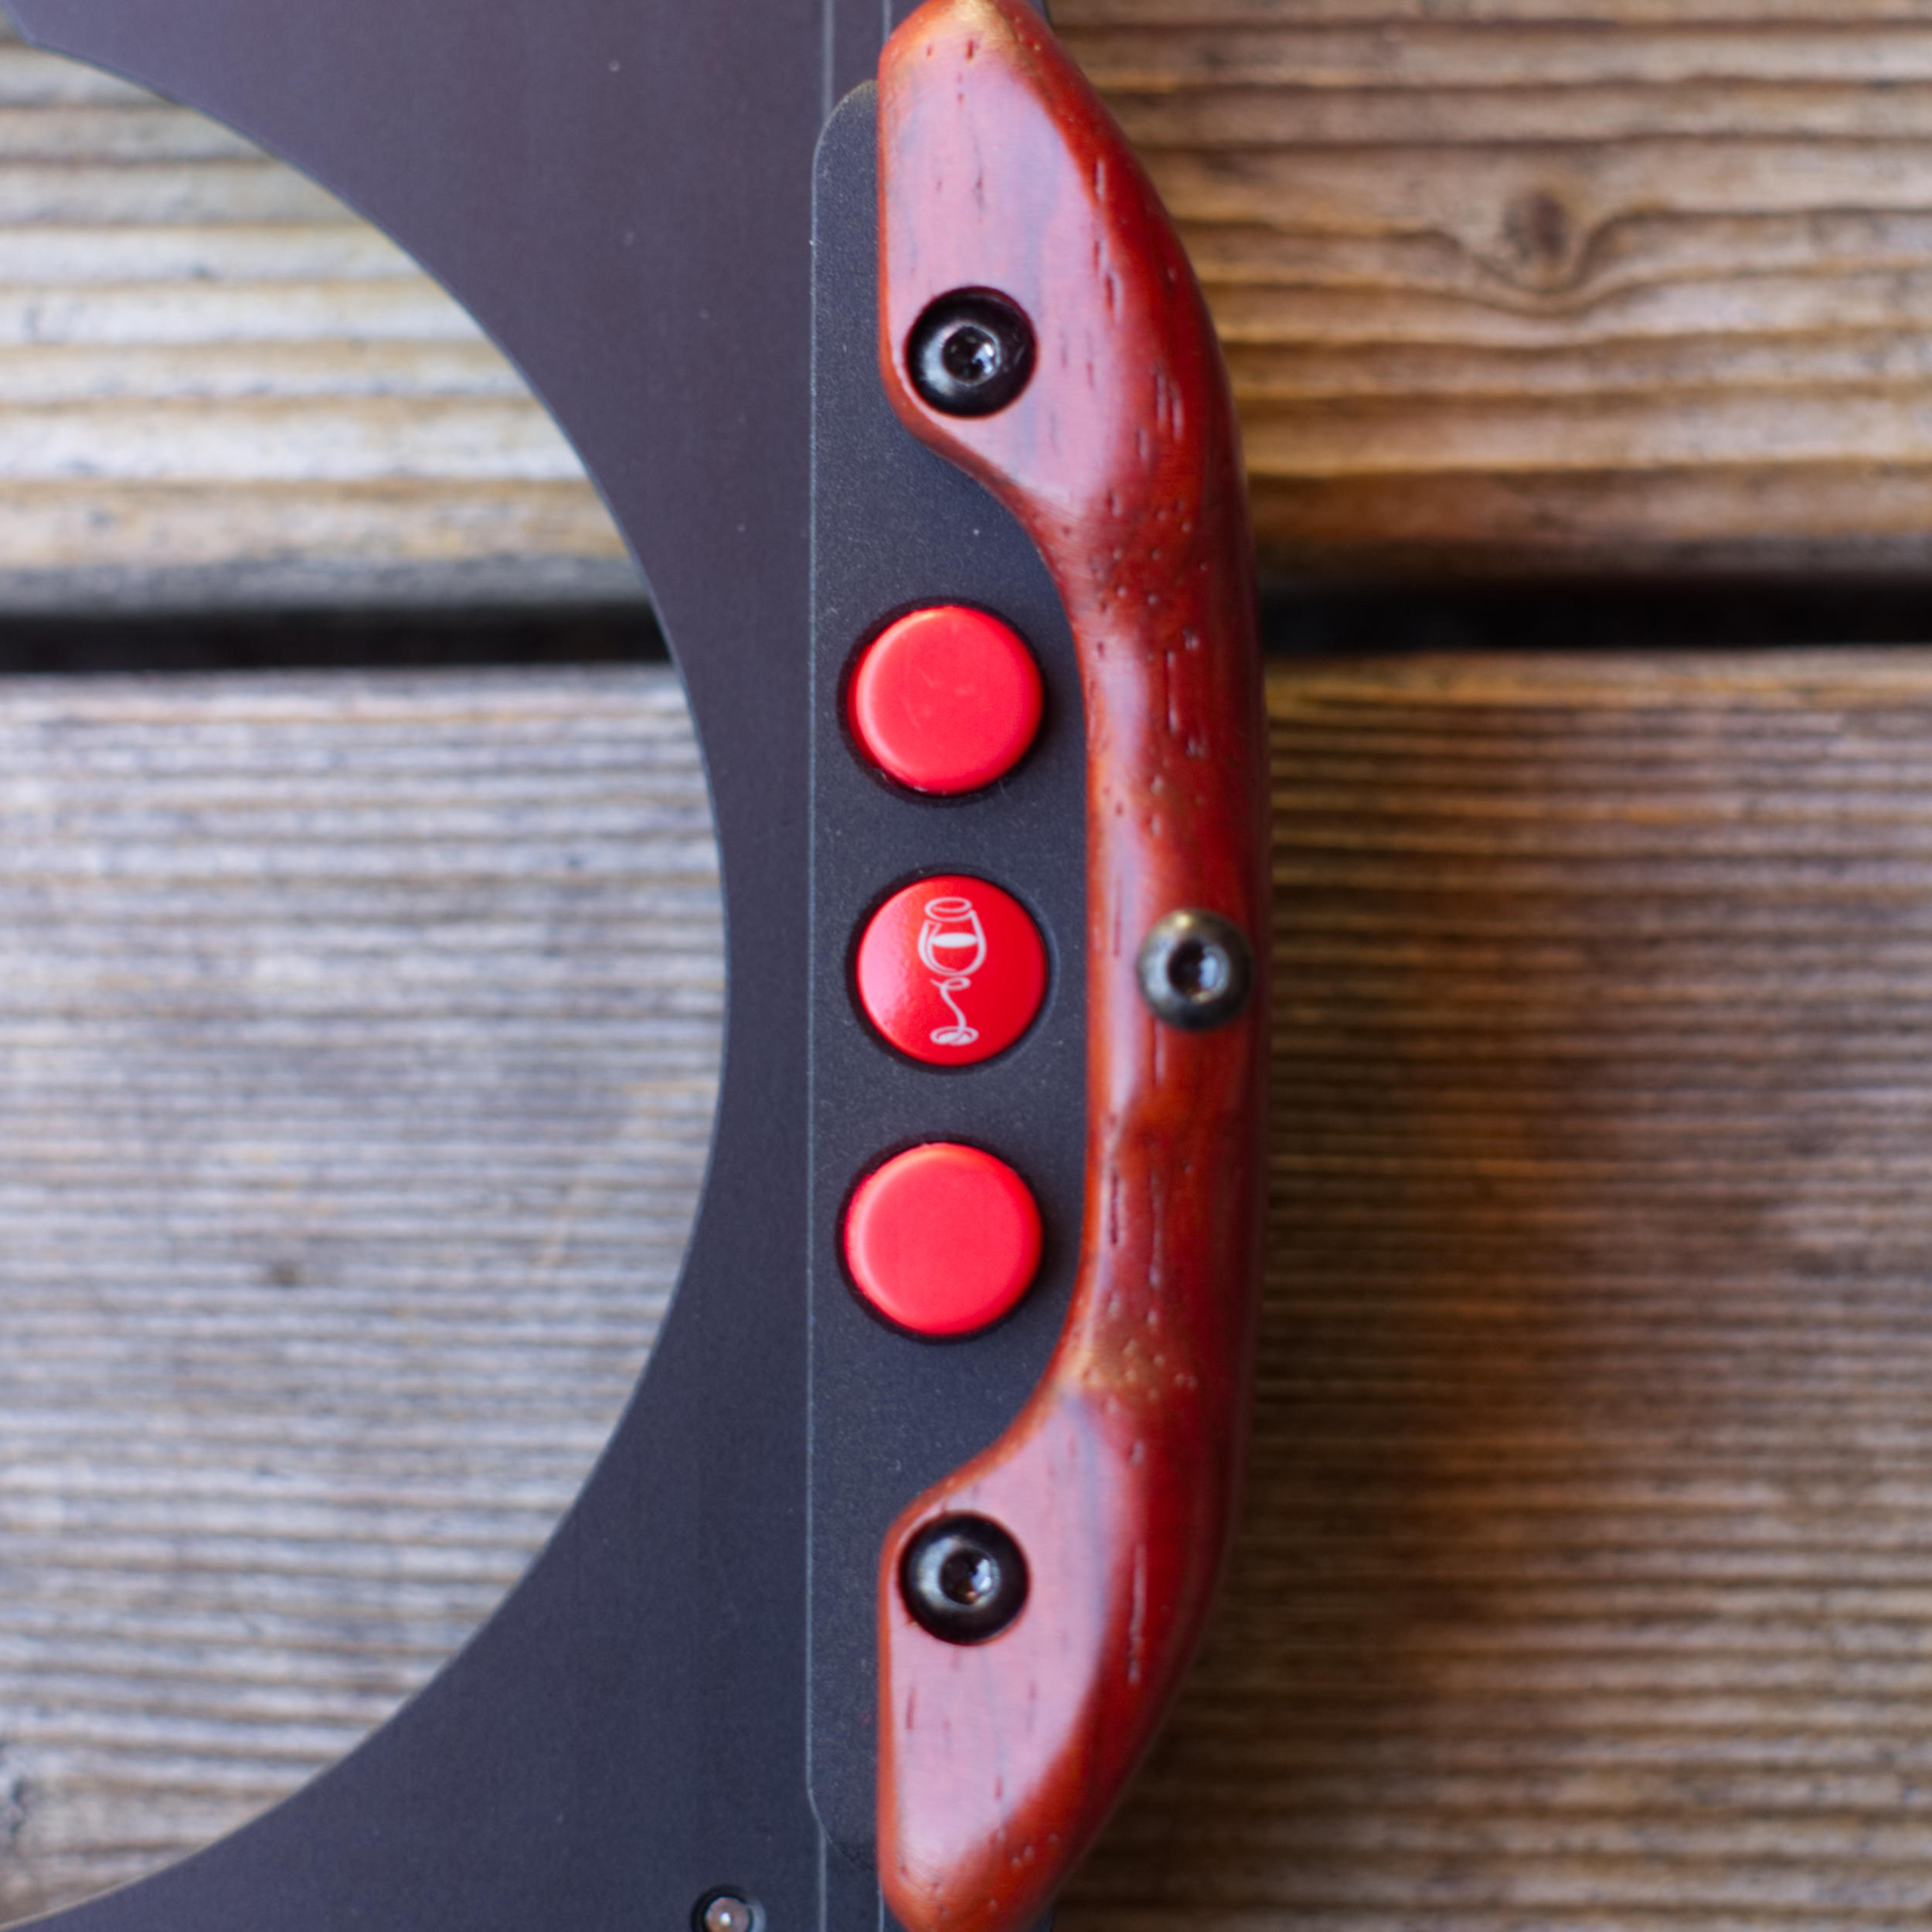 The WCC Filter Holder - Rosewood handle and unlocking buttons